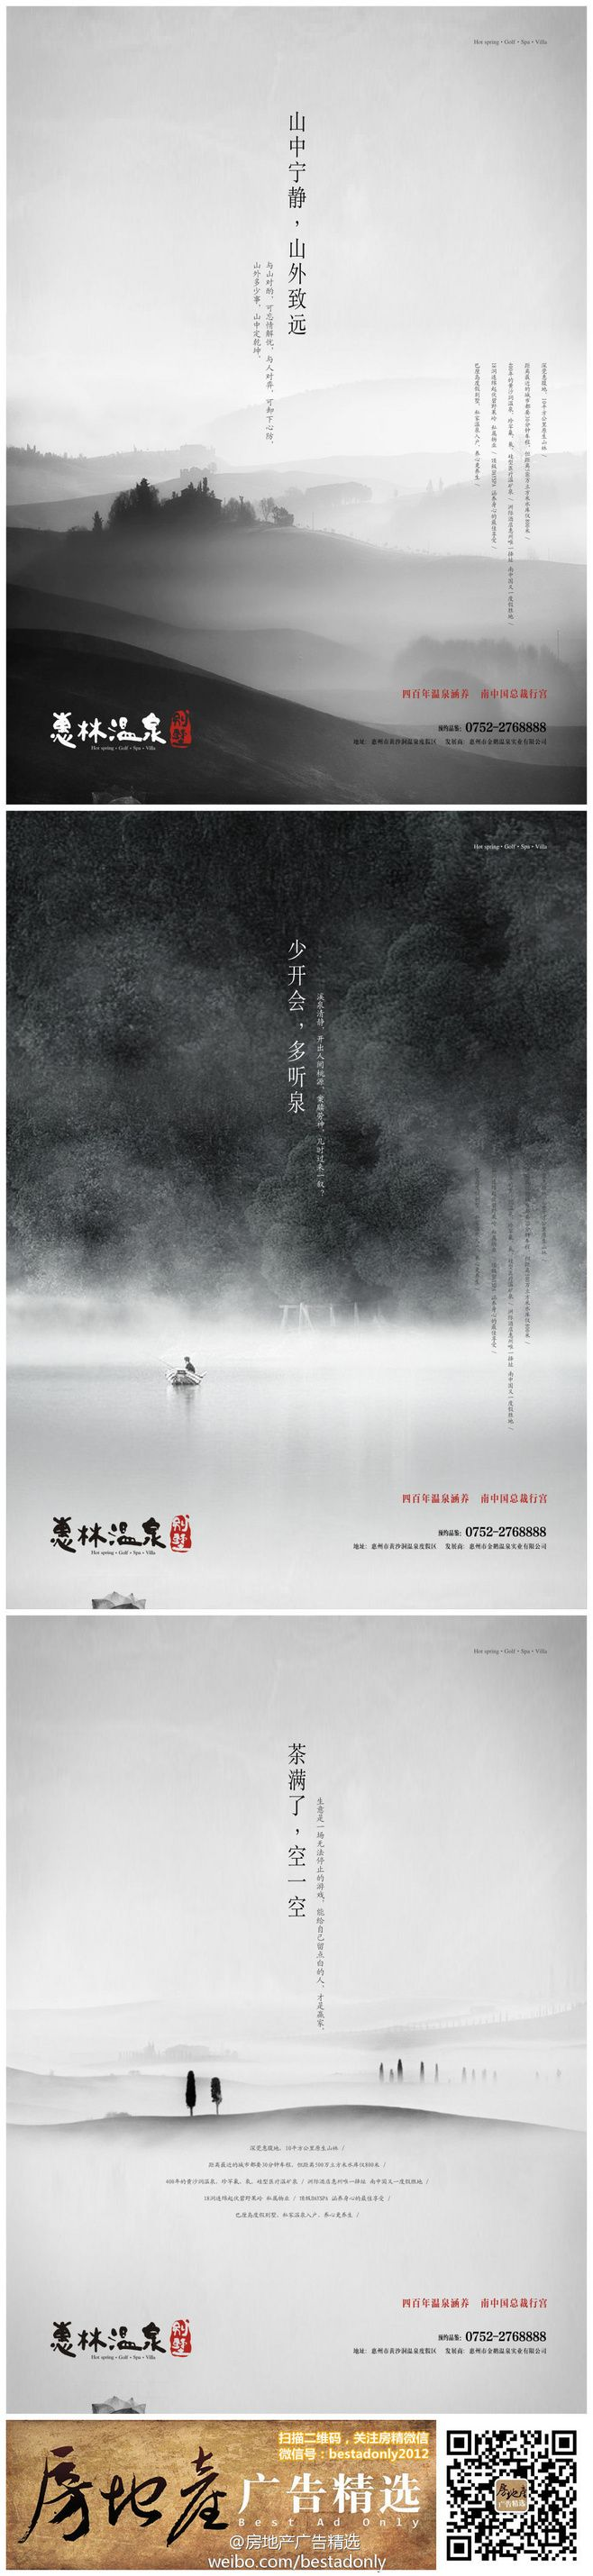 love the photographs and minimalist looks of the poster